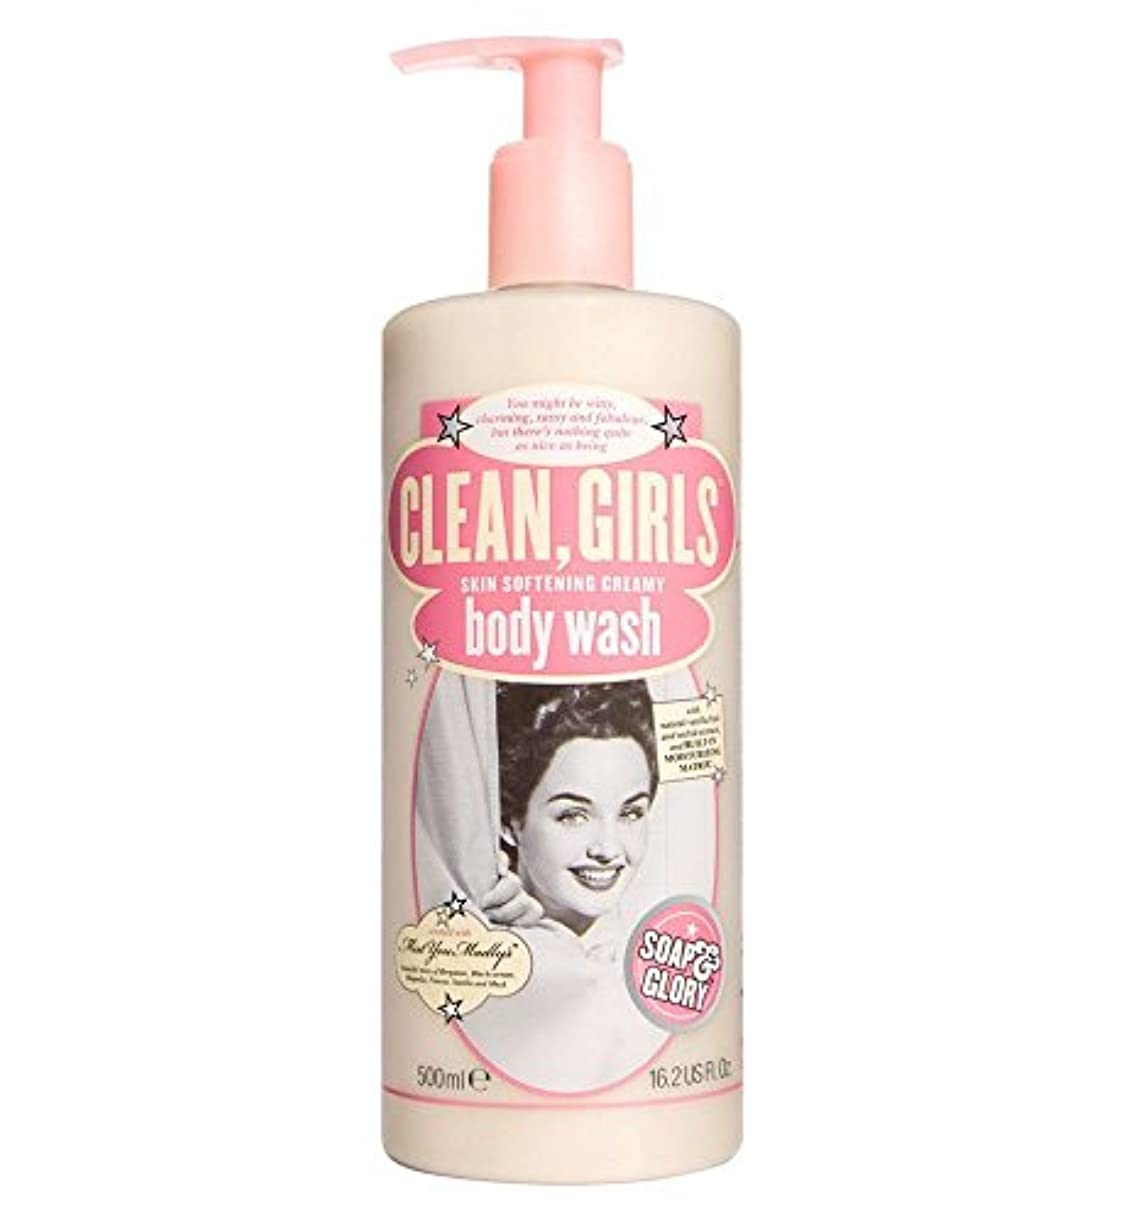 Soap & Glory Clean Girls Body Wash 500ml by Soap & Glory [並行輸入品]